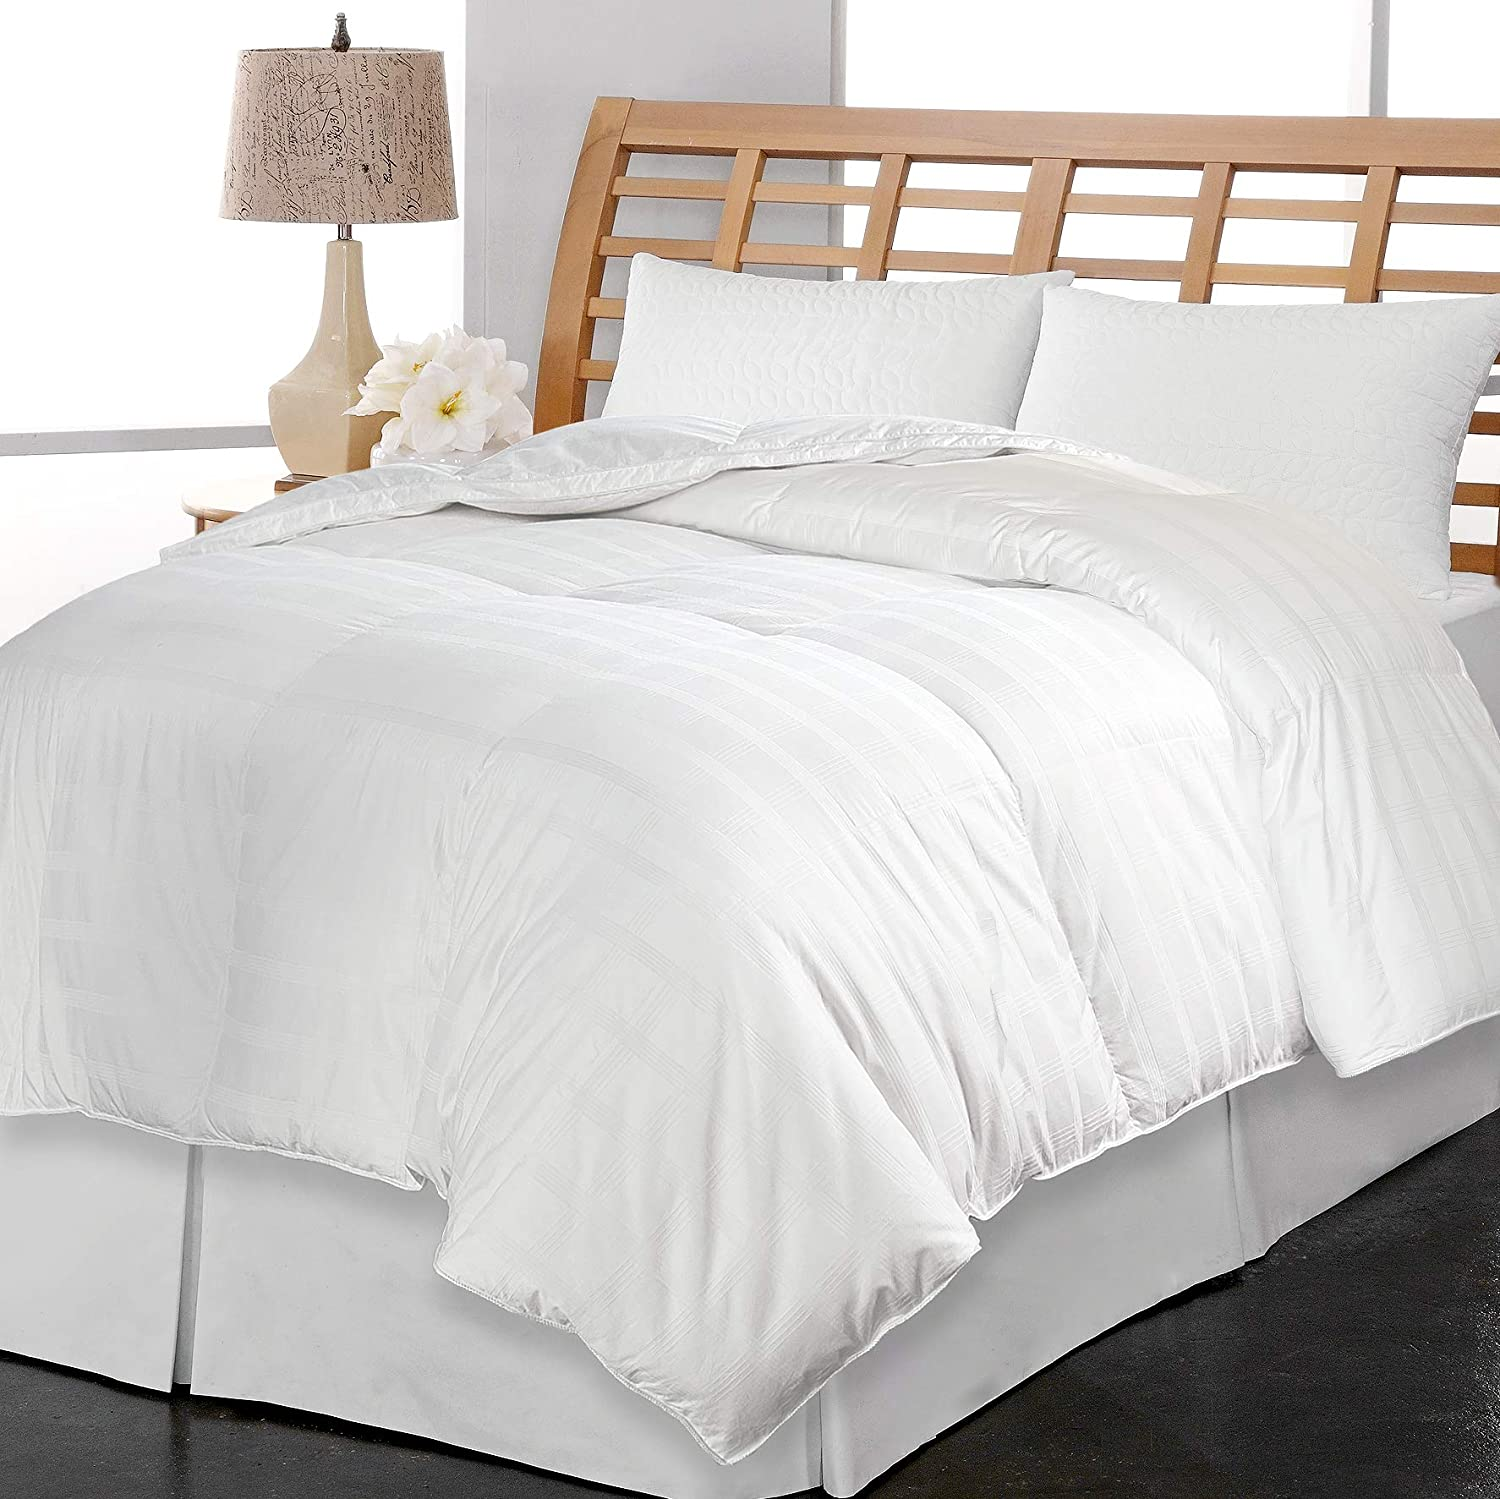 Kathy Ireland 600 Thread Count Windowpane Down Fiber Comforter, Full-Queen, White